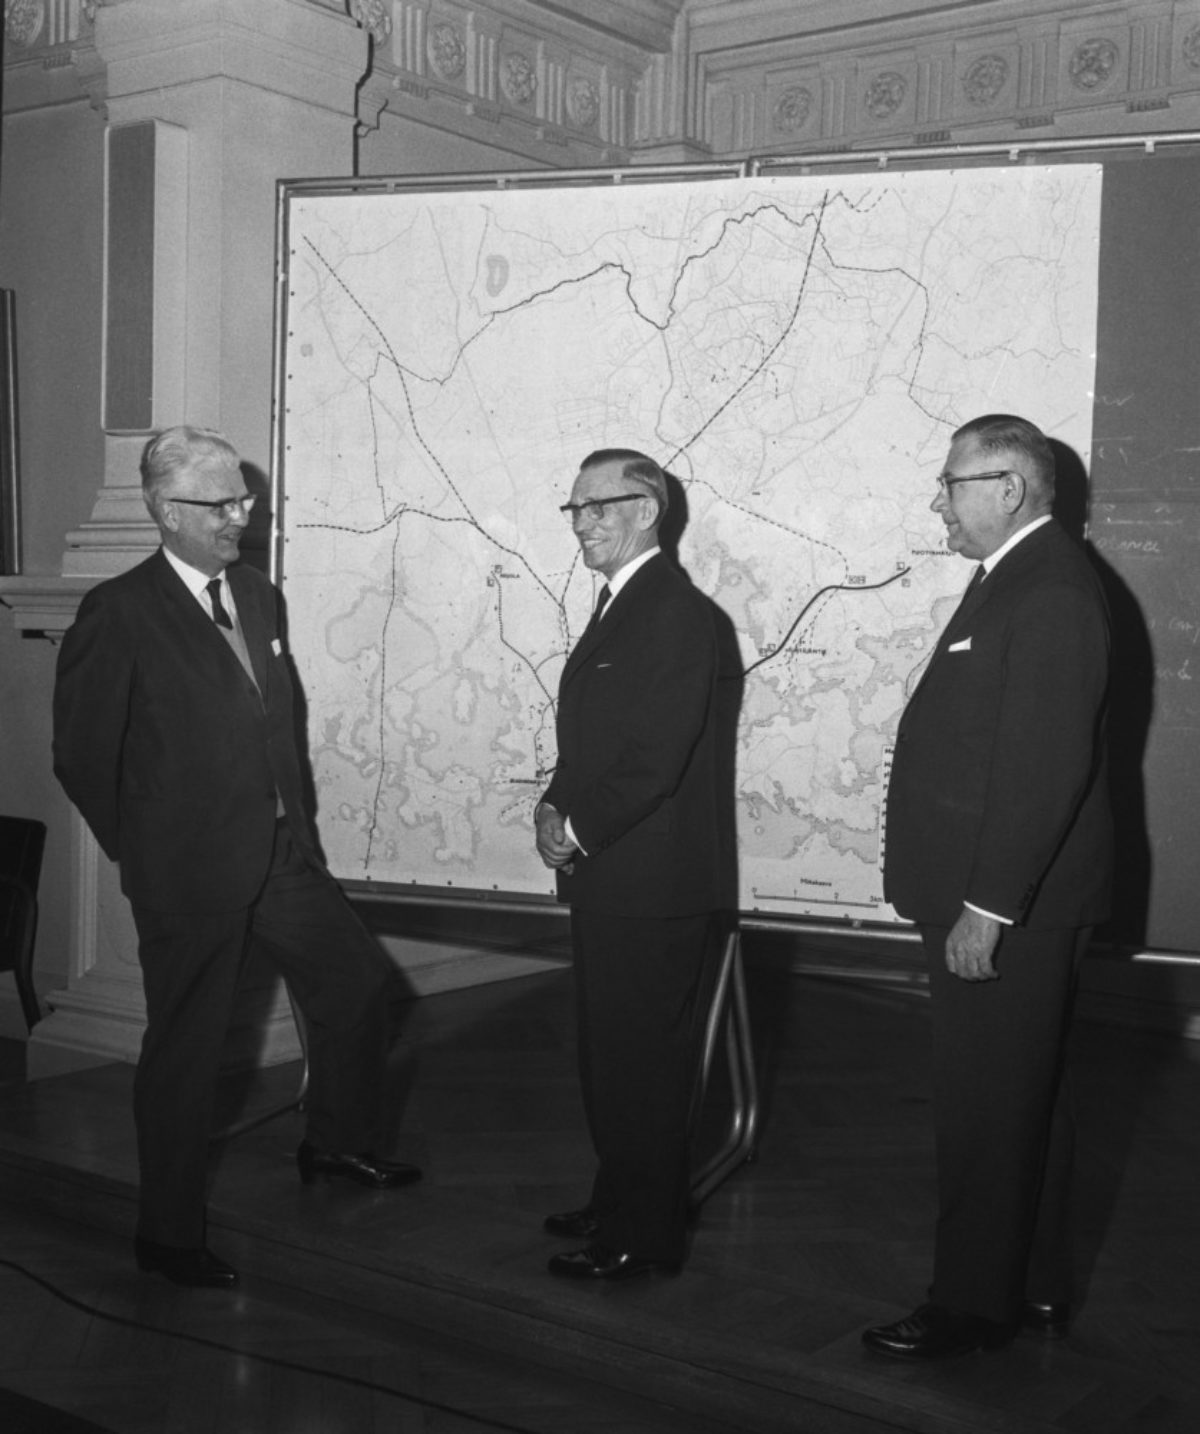 The Metro Committee submitted its report in 1965. On the left, Office Manager Reino Castrén, Lord Mayor Lauri Aho and Deputy Mayor J. A. Kivistö, 17 March 1965. Photo: Martti Halme / Uusi Suomi / JOKA / Finnish Heritage Agency